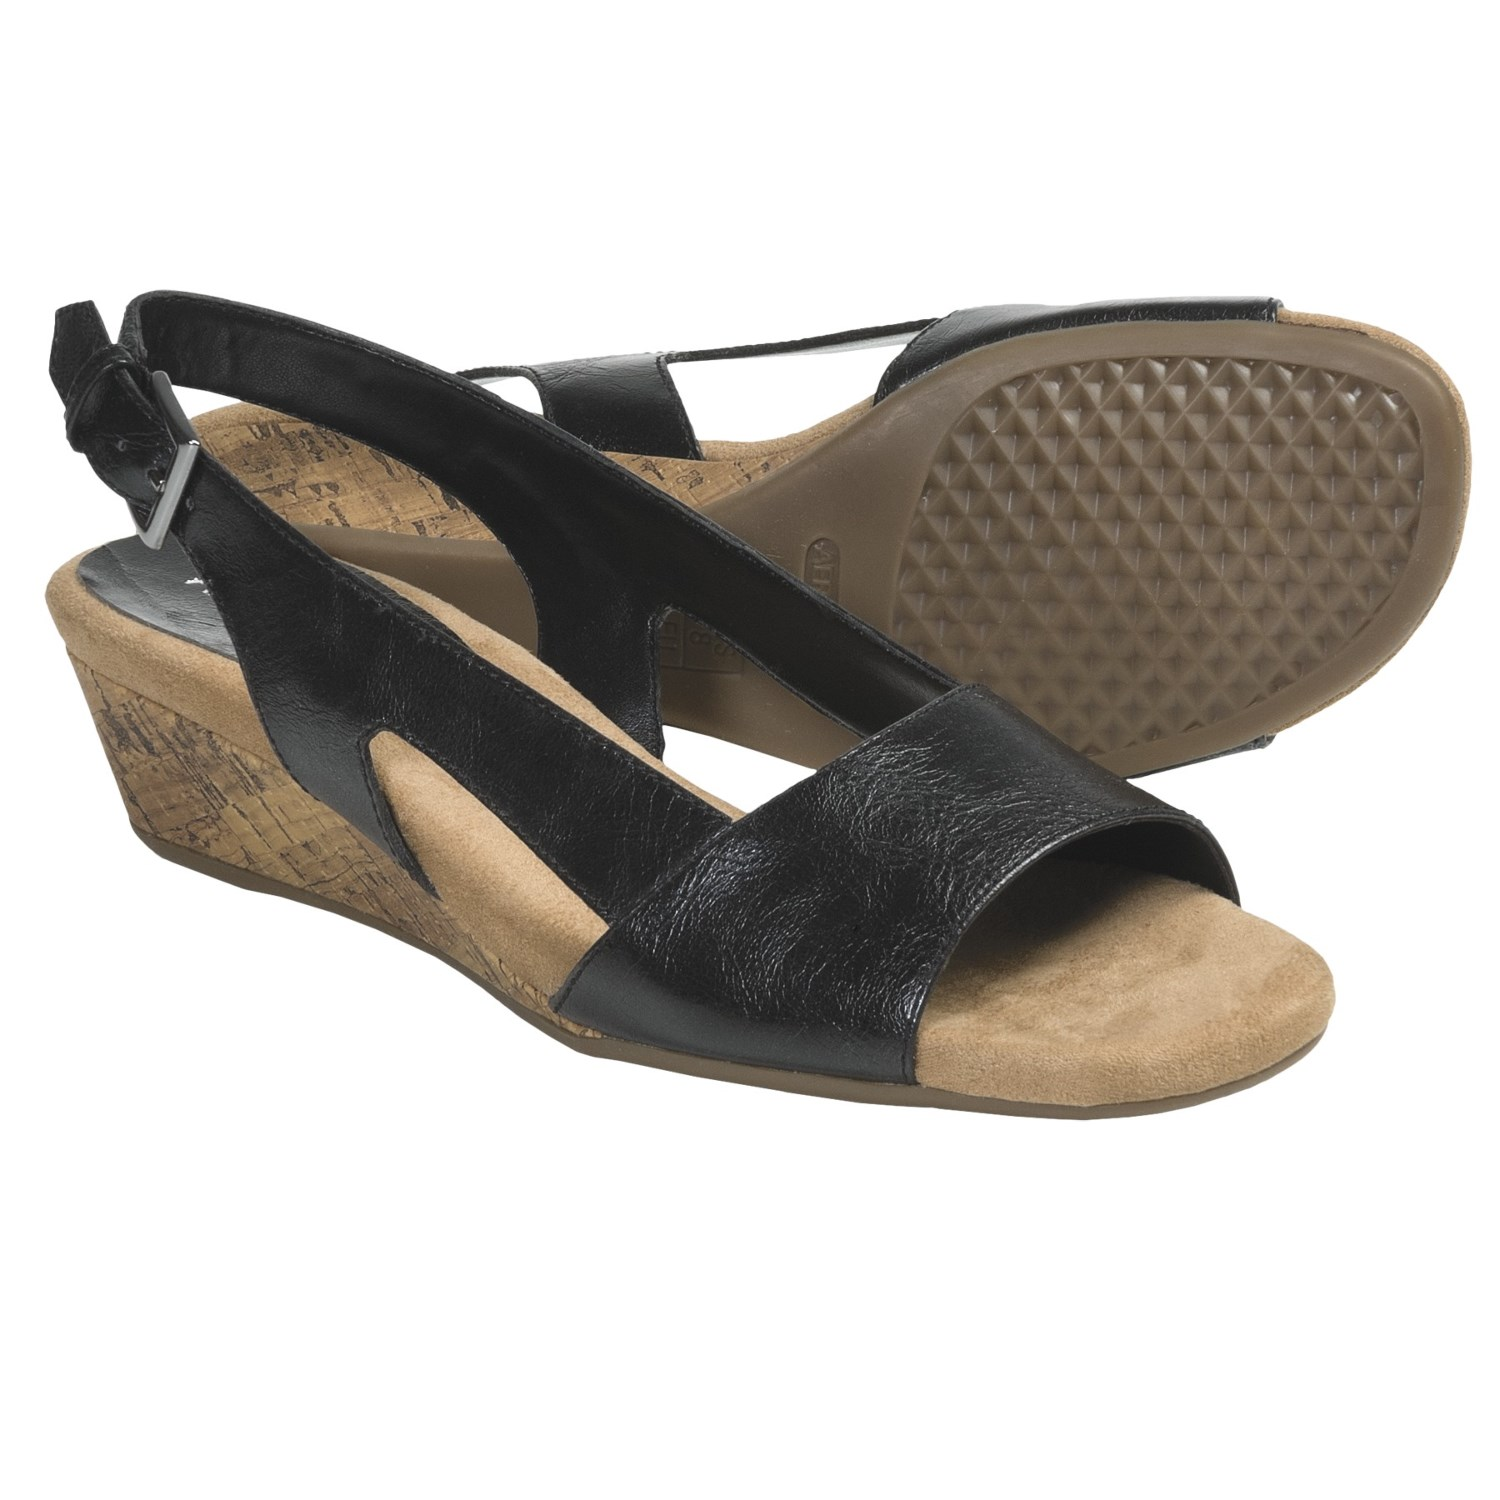 Women's Shoes: Find Shoes for Women | Kohl's